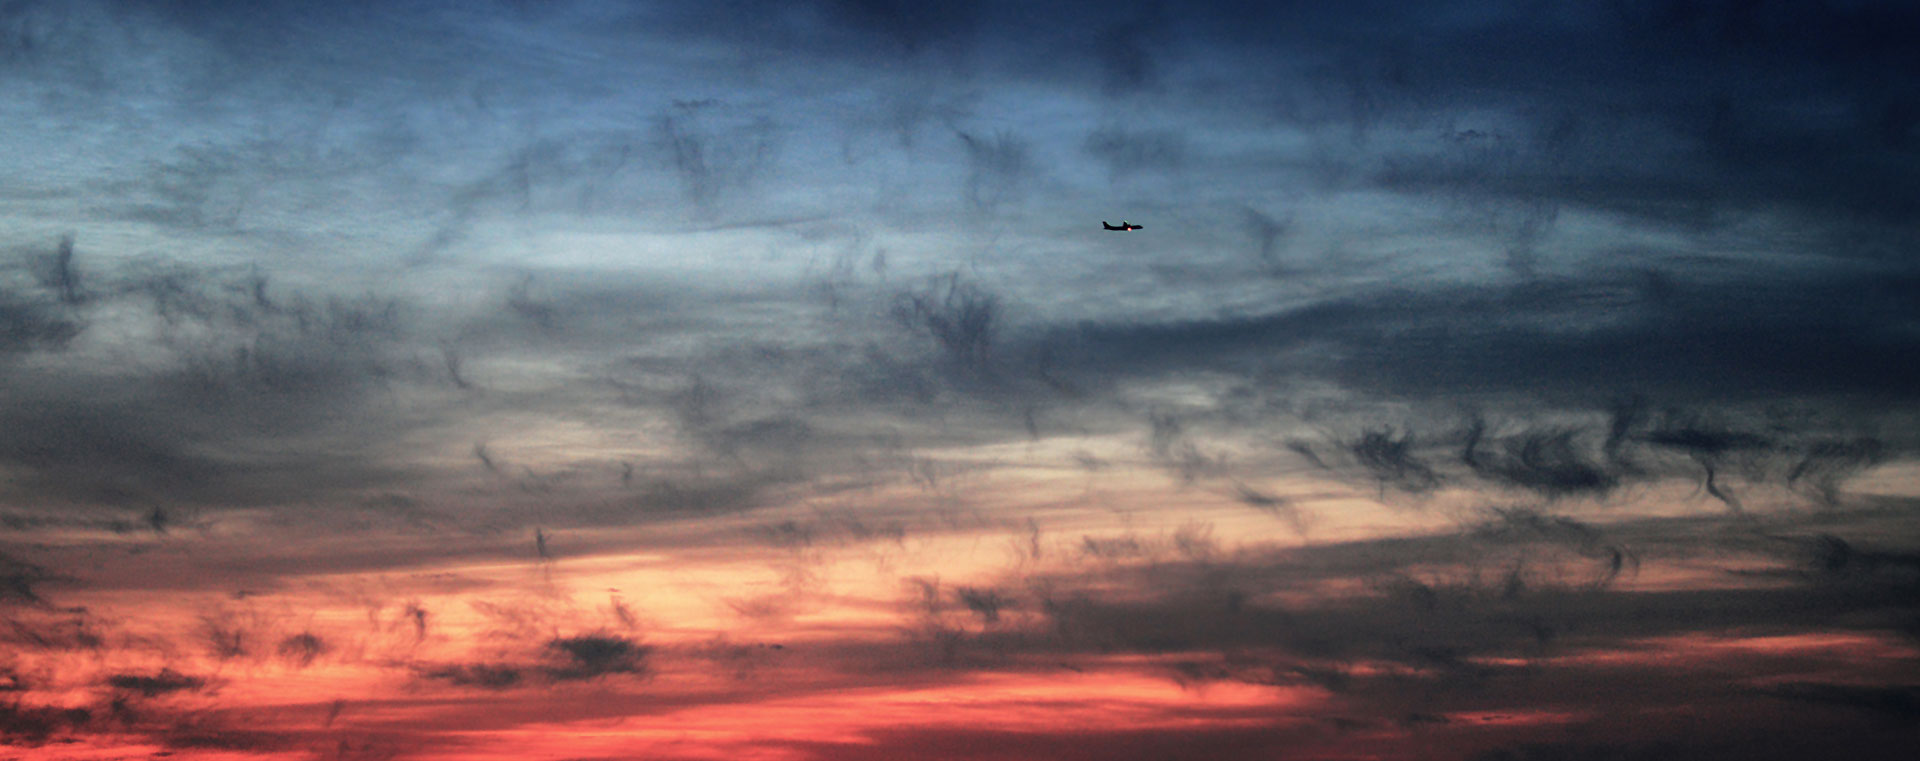 plane-blue-red-sky-clouds